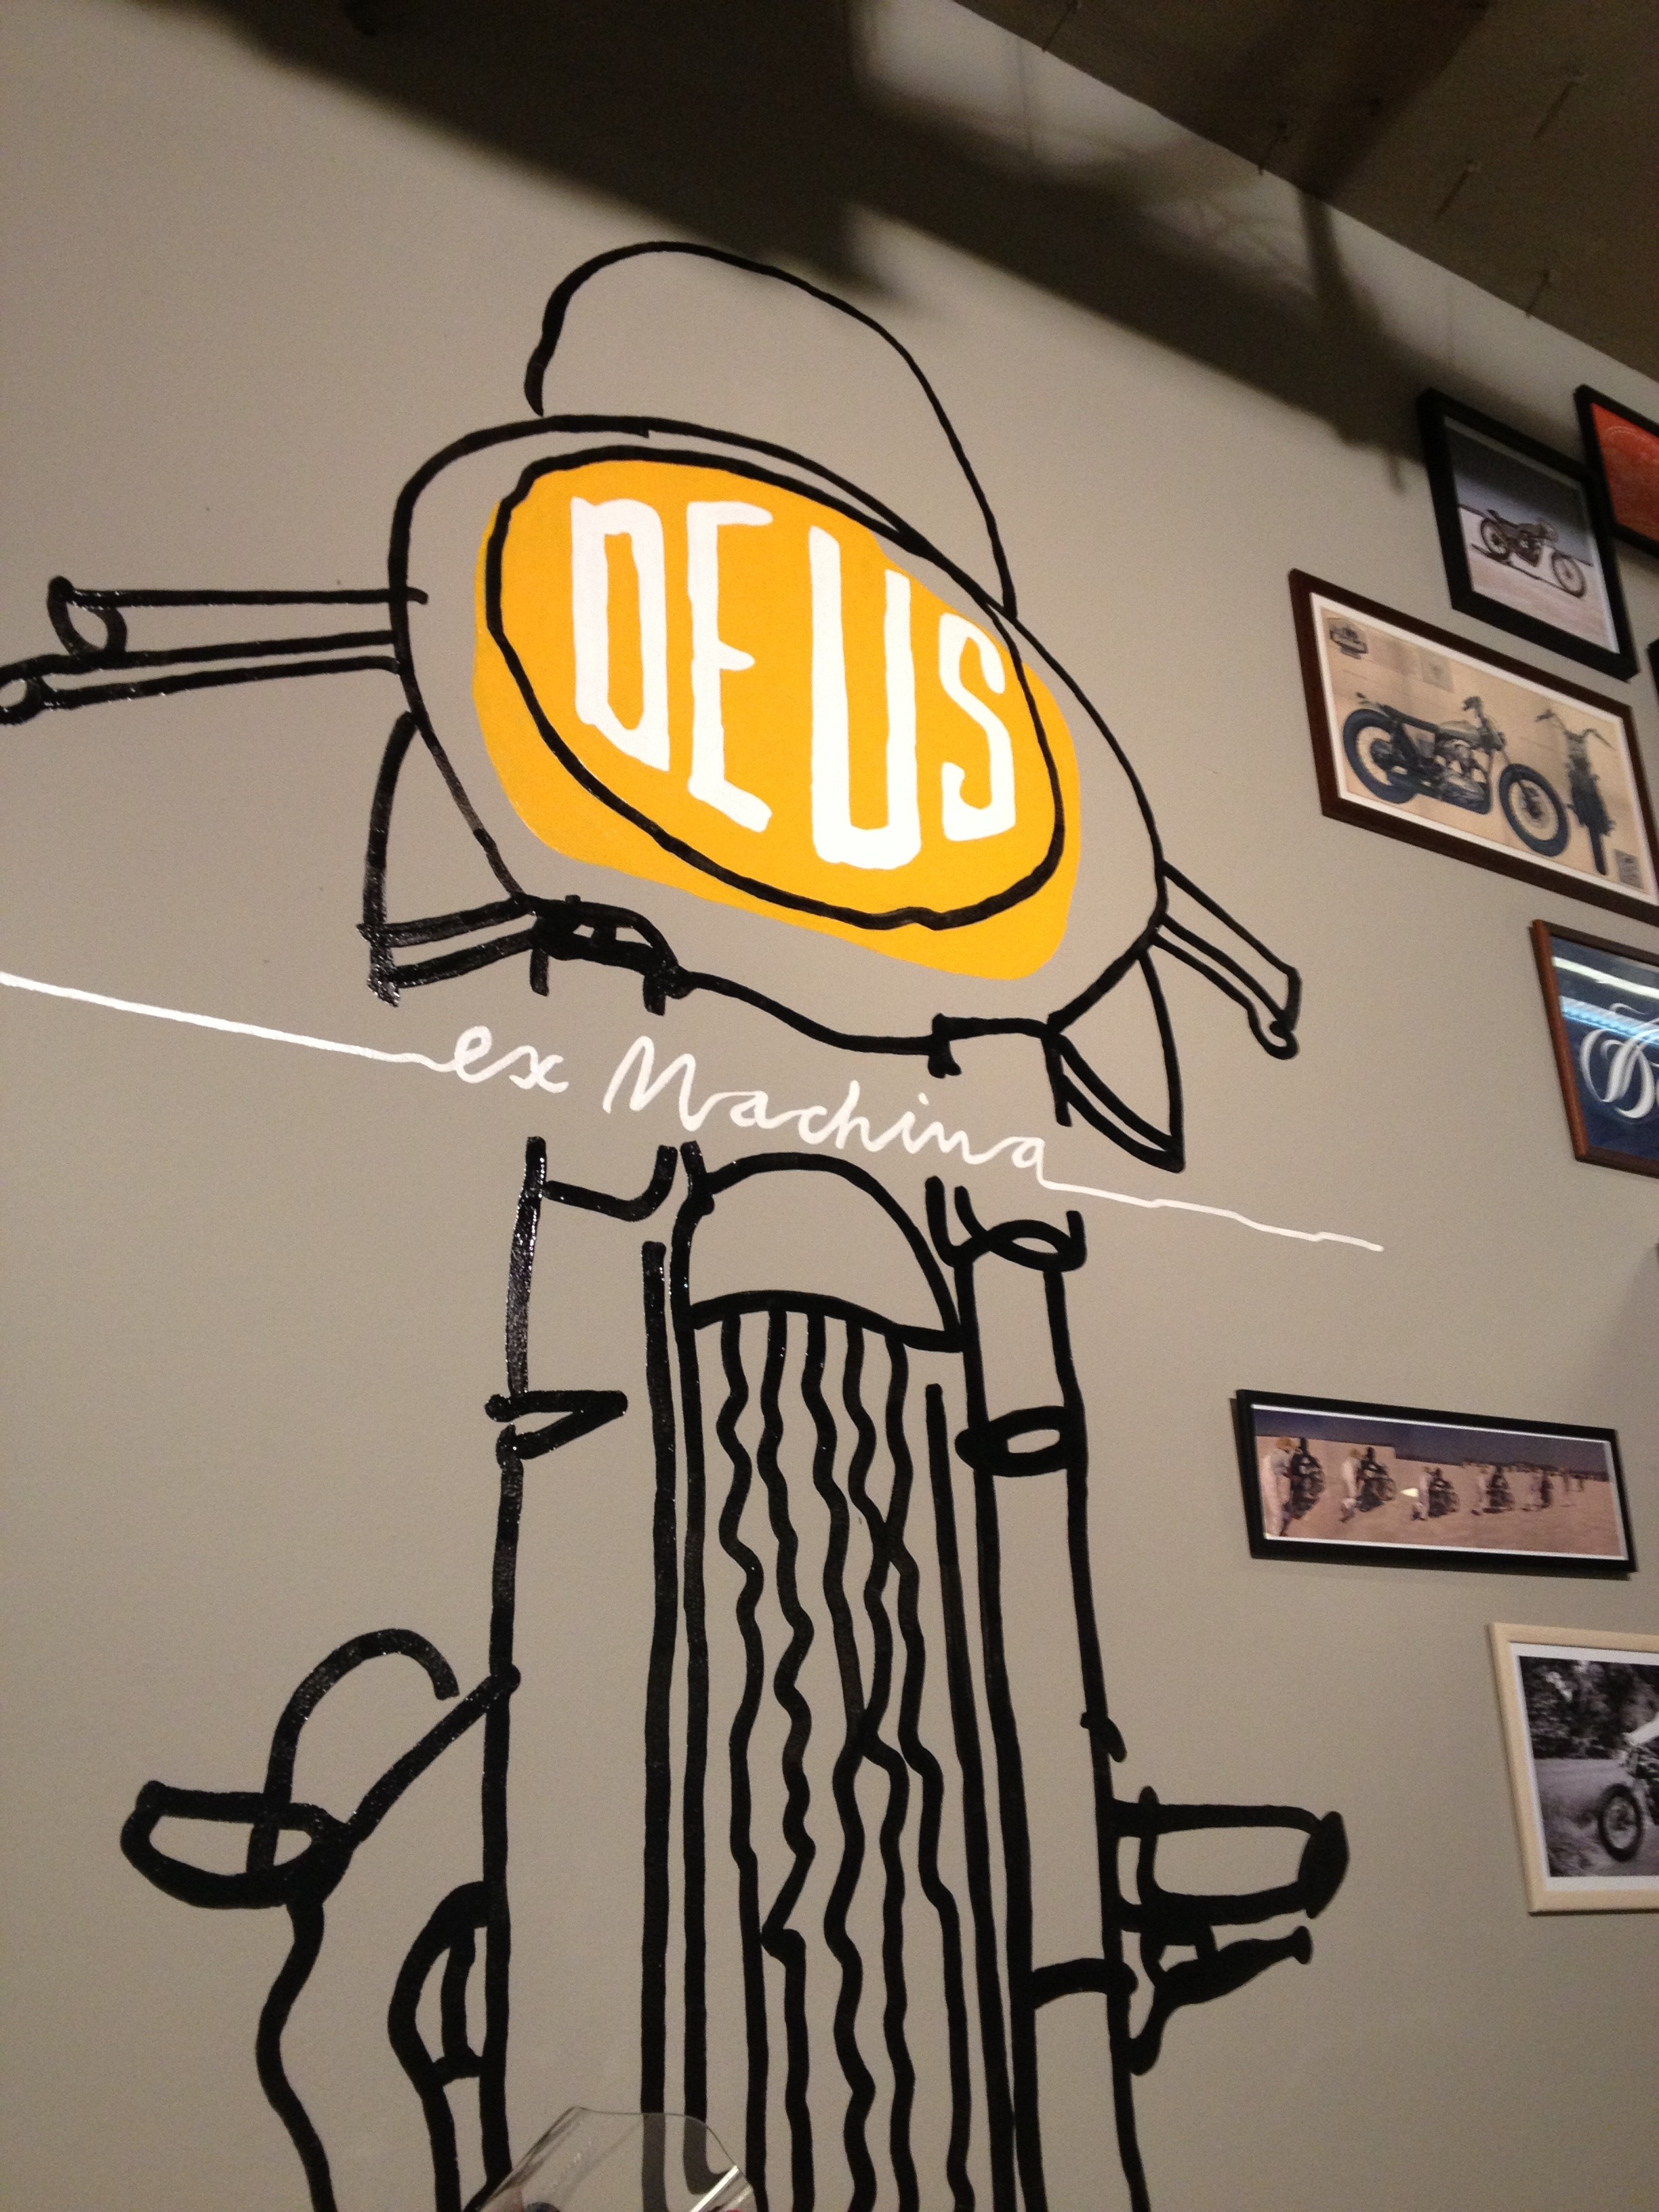 Oil13 - Deus ex Machina Milán - Logo Bike